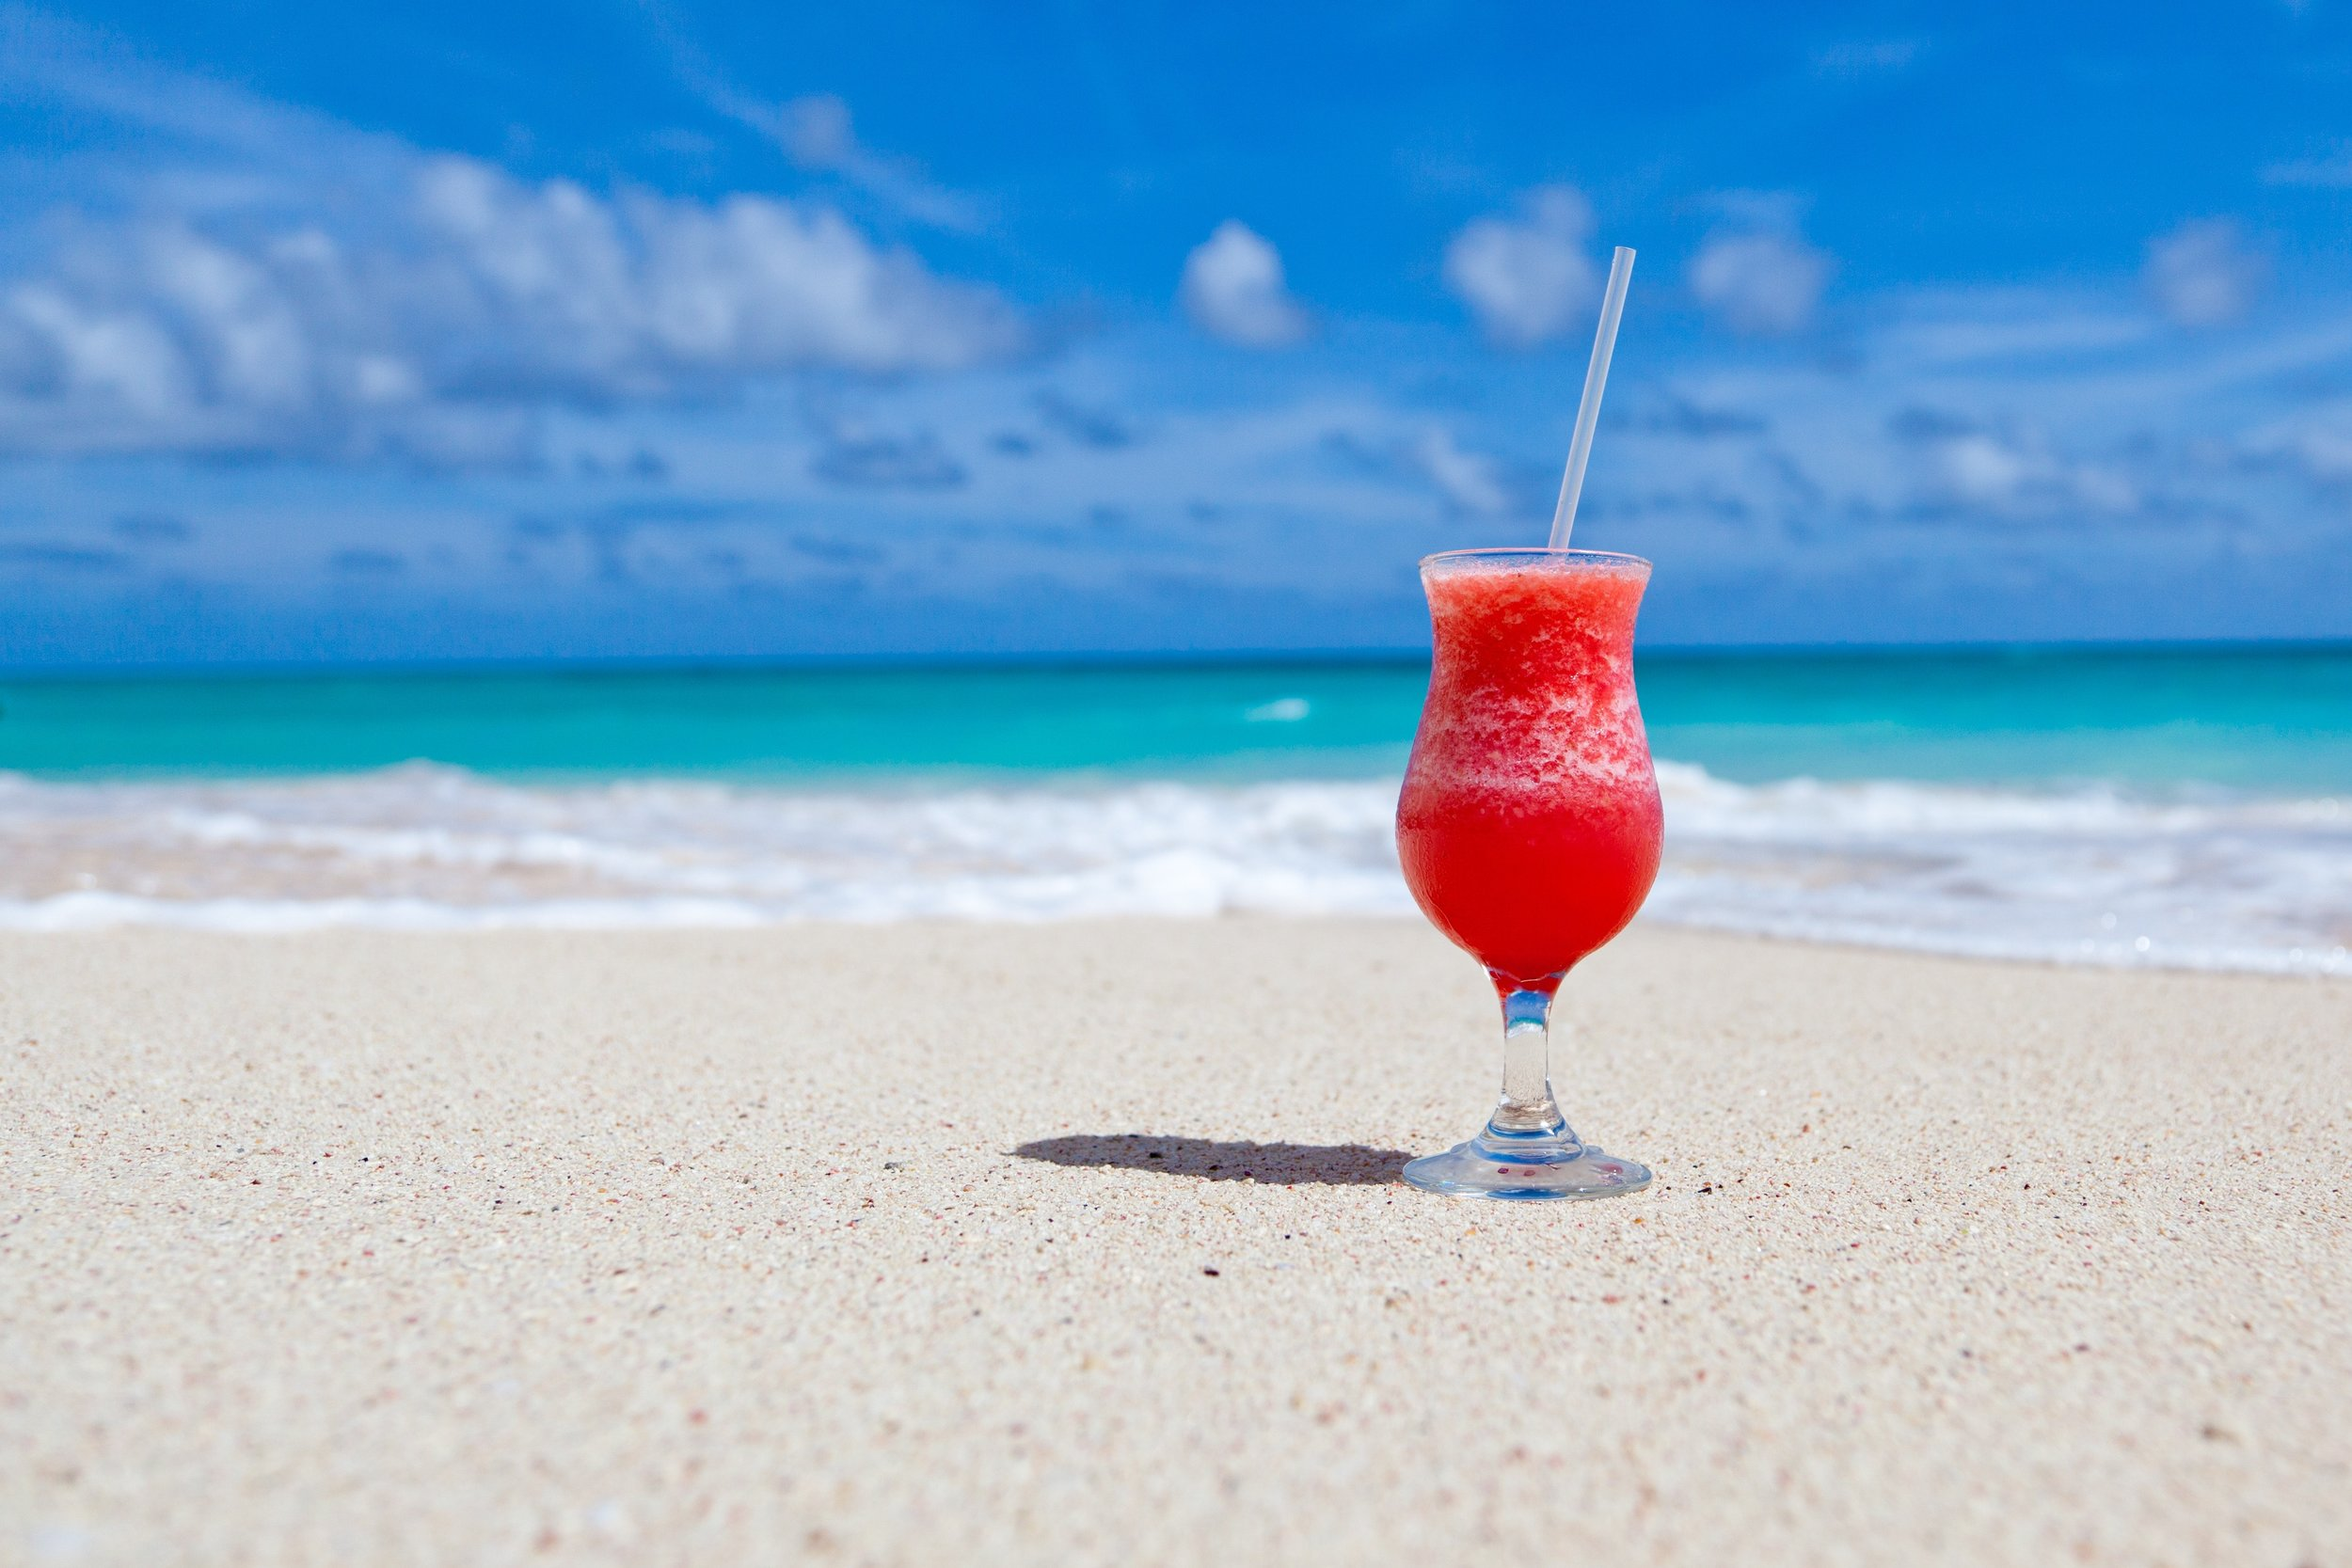 beach-beverage-drink-68672.jpg